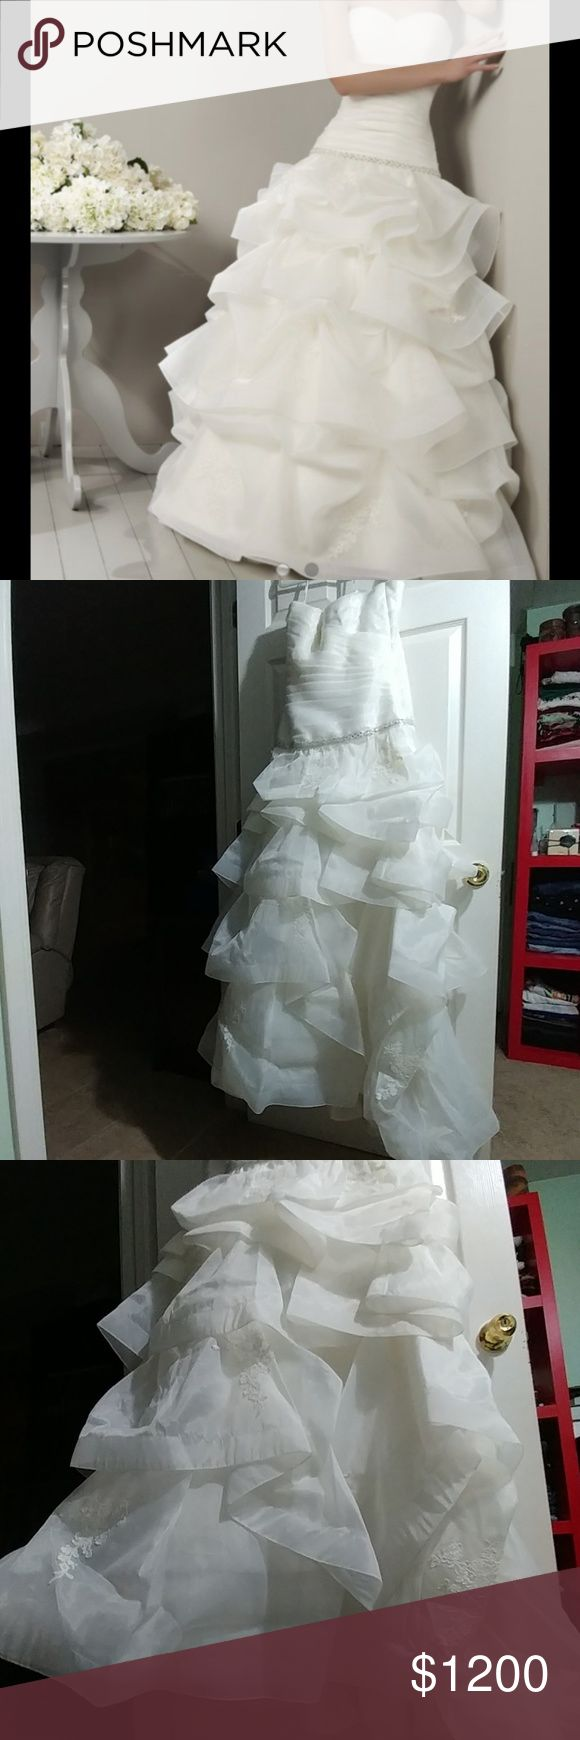 🎉FINAL🎉 Adriana Alier Bridal Wedding Gown, NWT New with tags.   This beautiful wedding gown is size 12 but can tighten from the back and perhaps fit someone a bit smaller as well.   Please don't hesitate to ask any questions. Reasonable offers considered. Adriana Alier Dresses Wedding